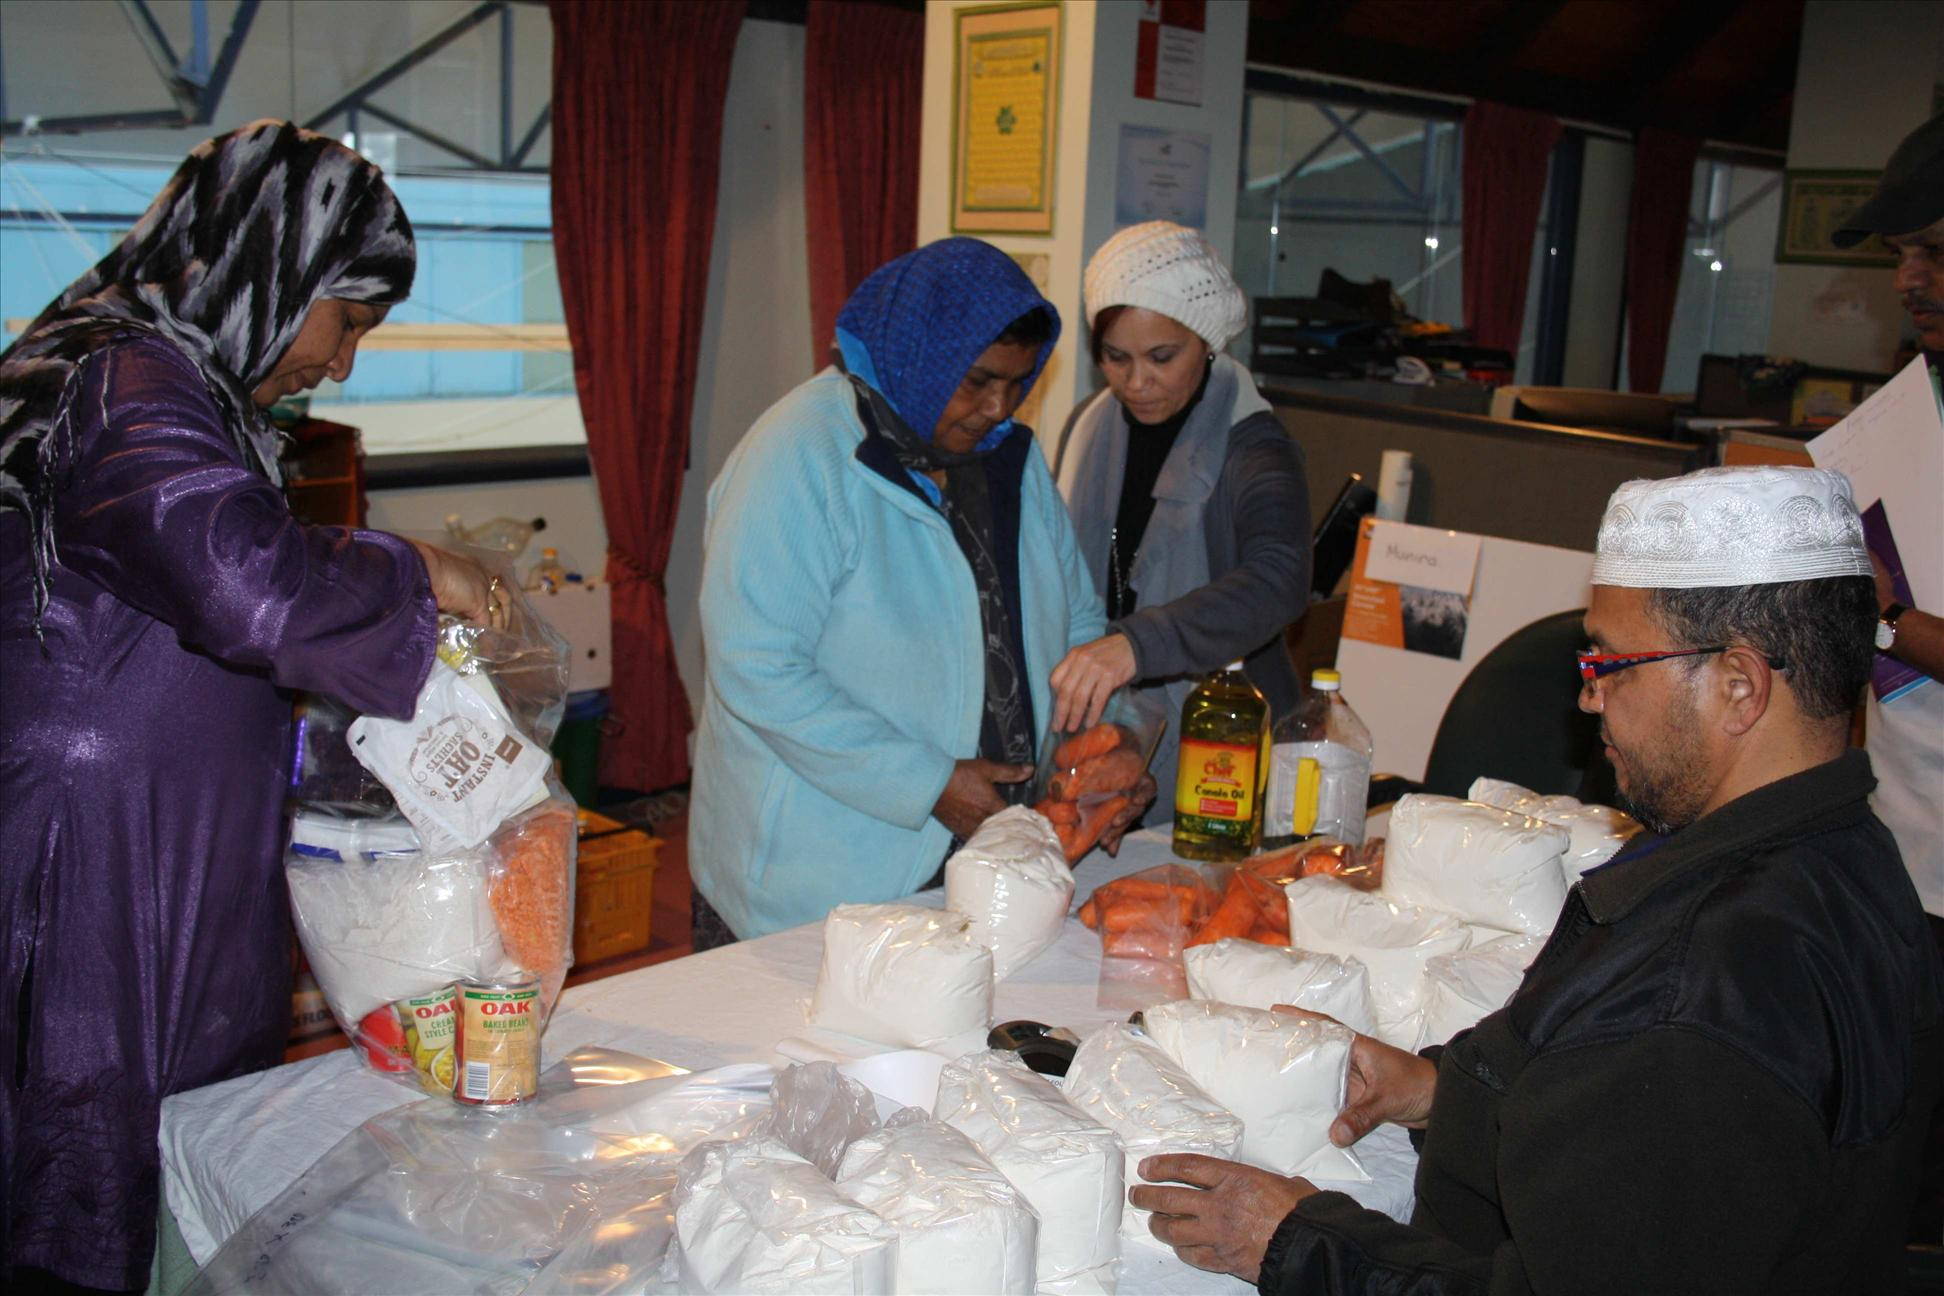 Community service in the spirit of Islam